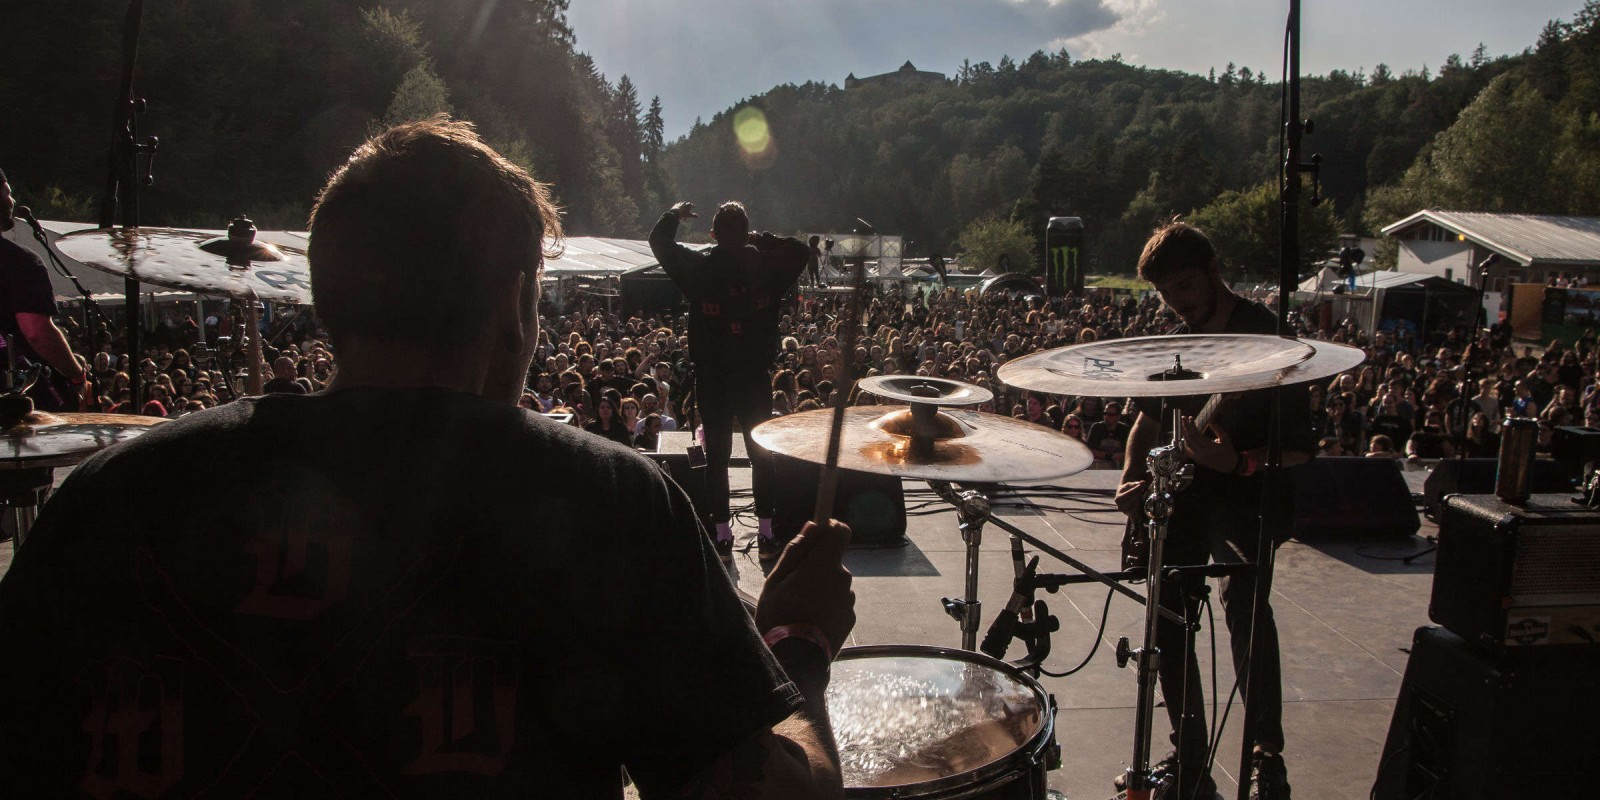 Imagery of ME Contracted Band Brothers Till We Die from the ME Contracted event Rockstadt Extreme Fest in Romania.